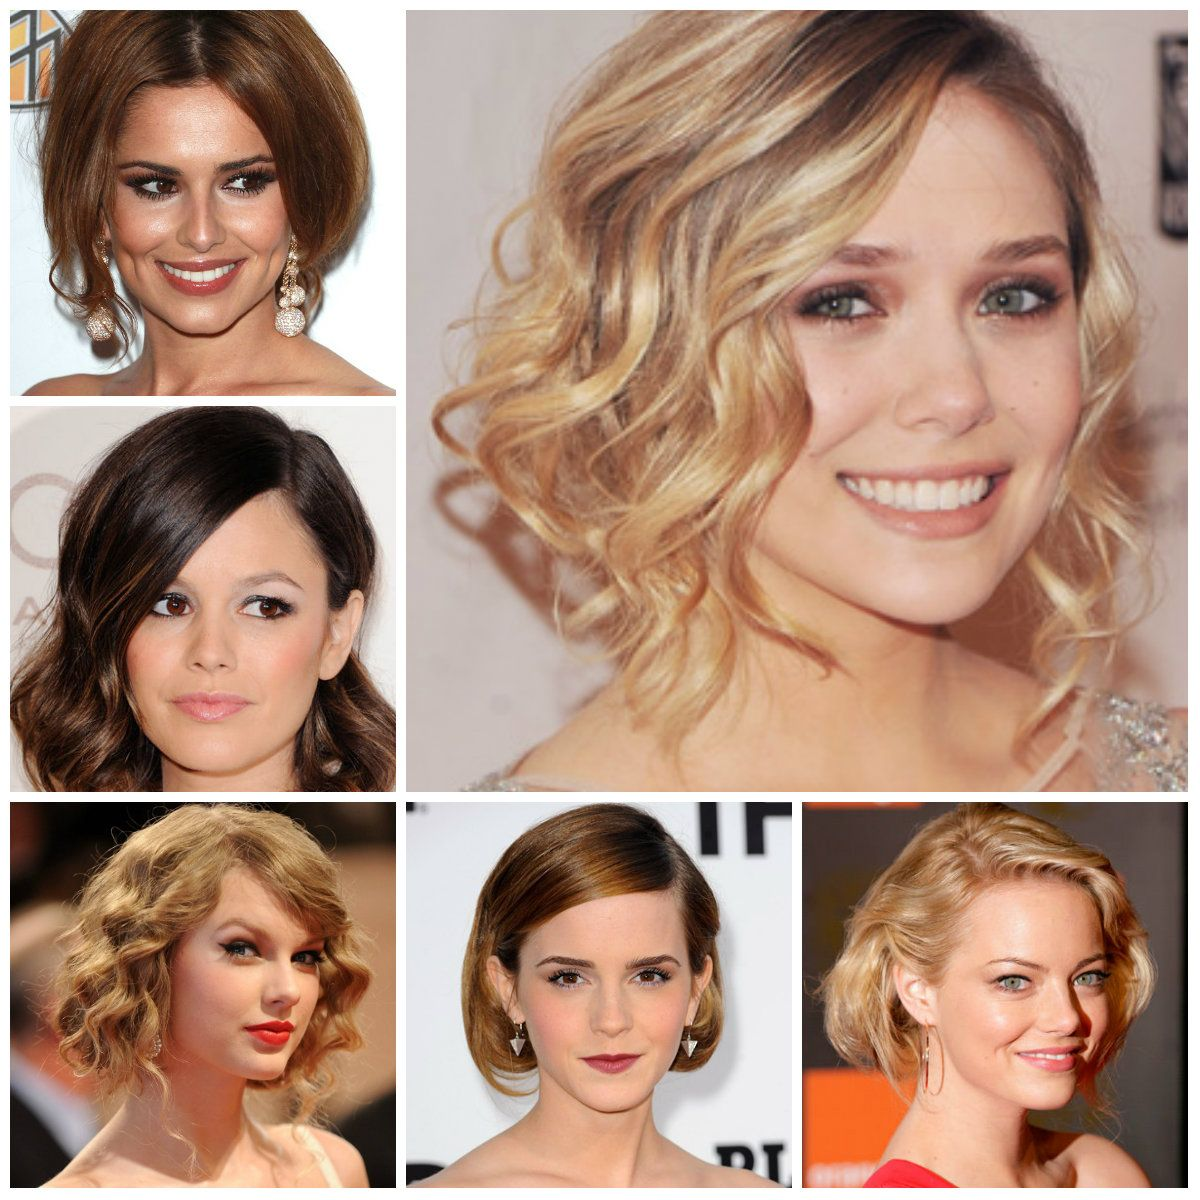 Trendy Hairstyles Amusing New Trending Hairstyles For Women 13 For Your Inspiration With